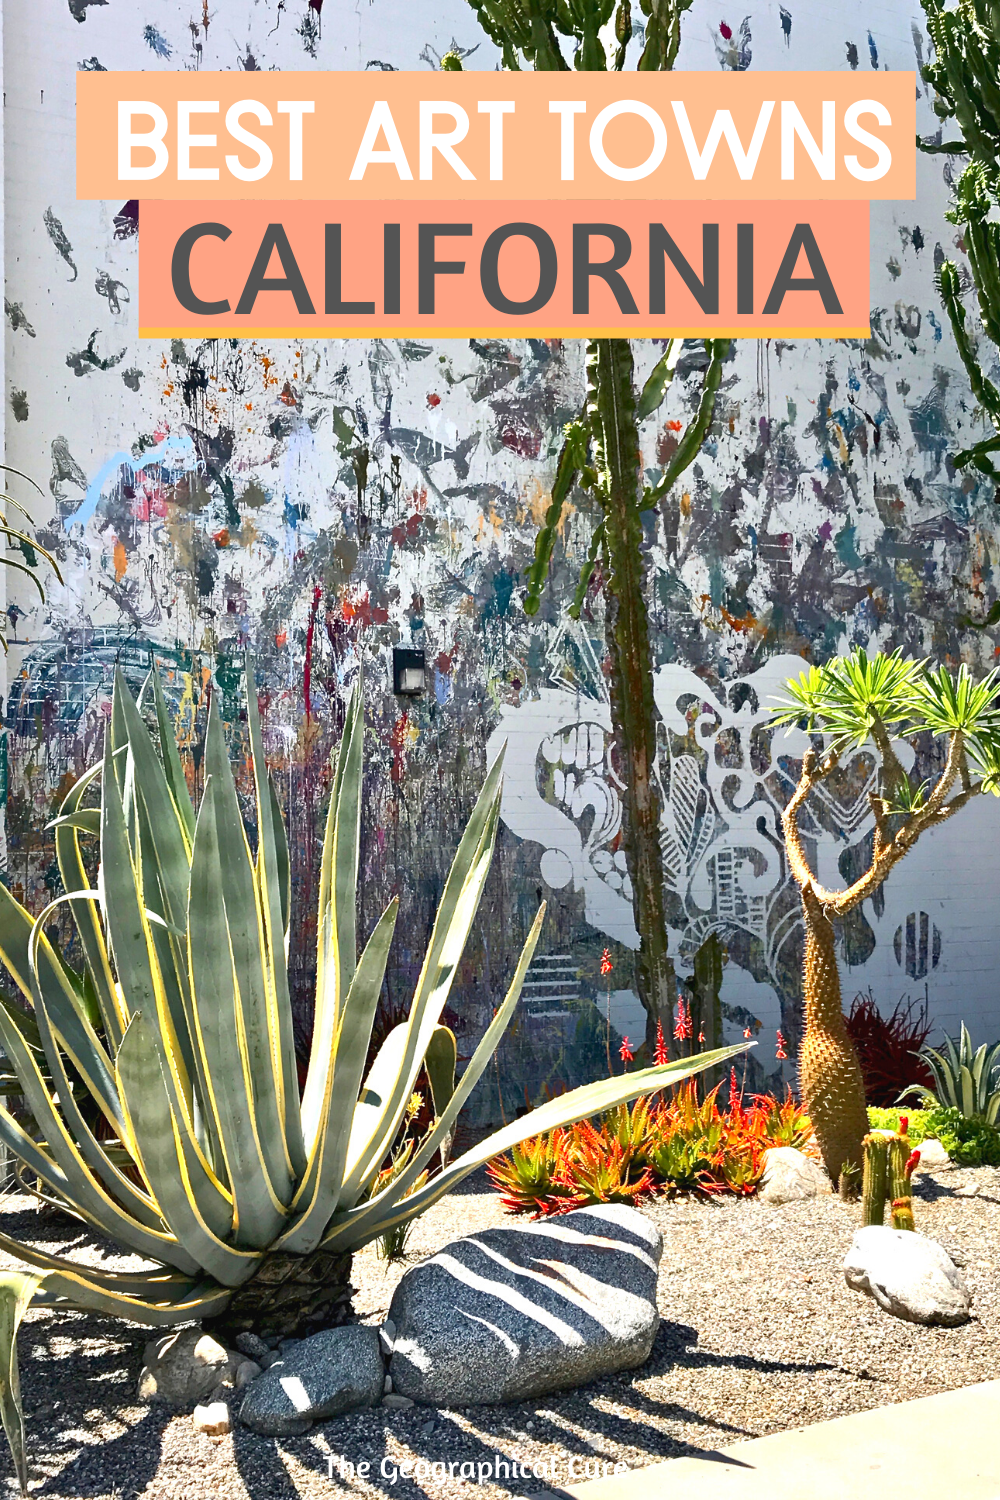 Best Art Towns in California